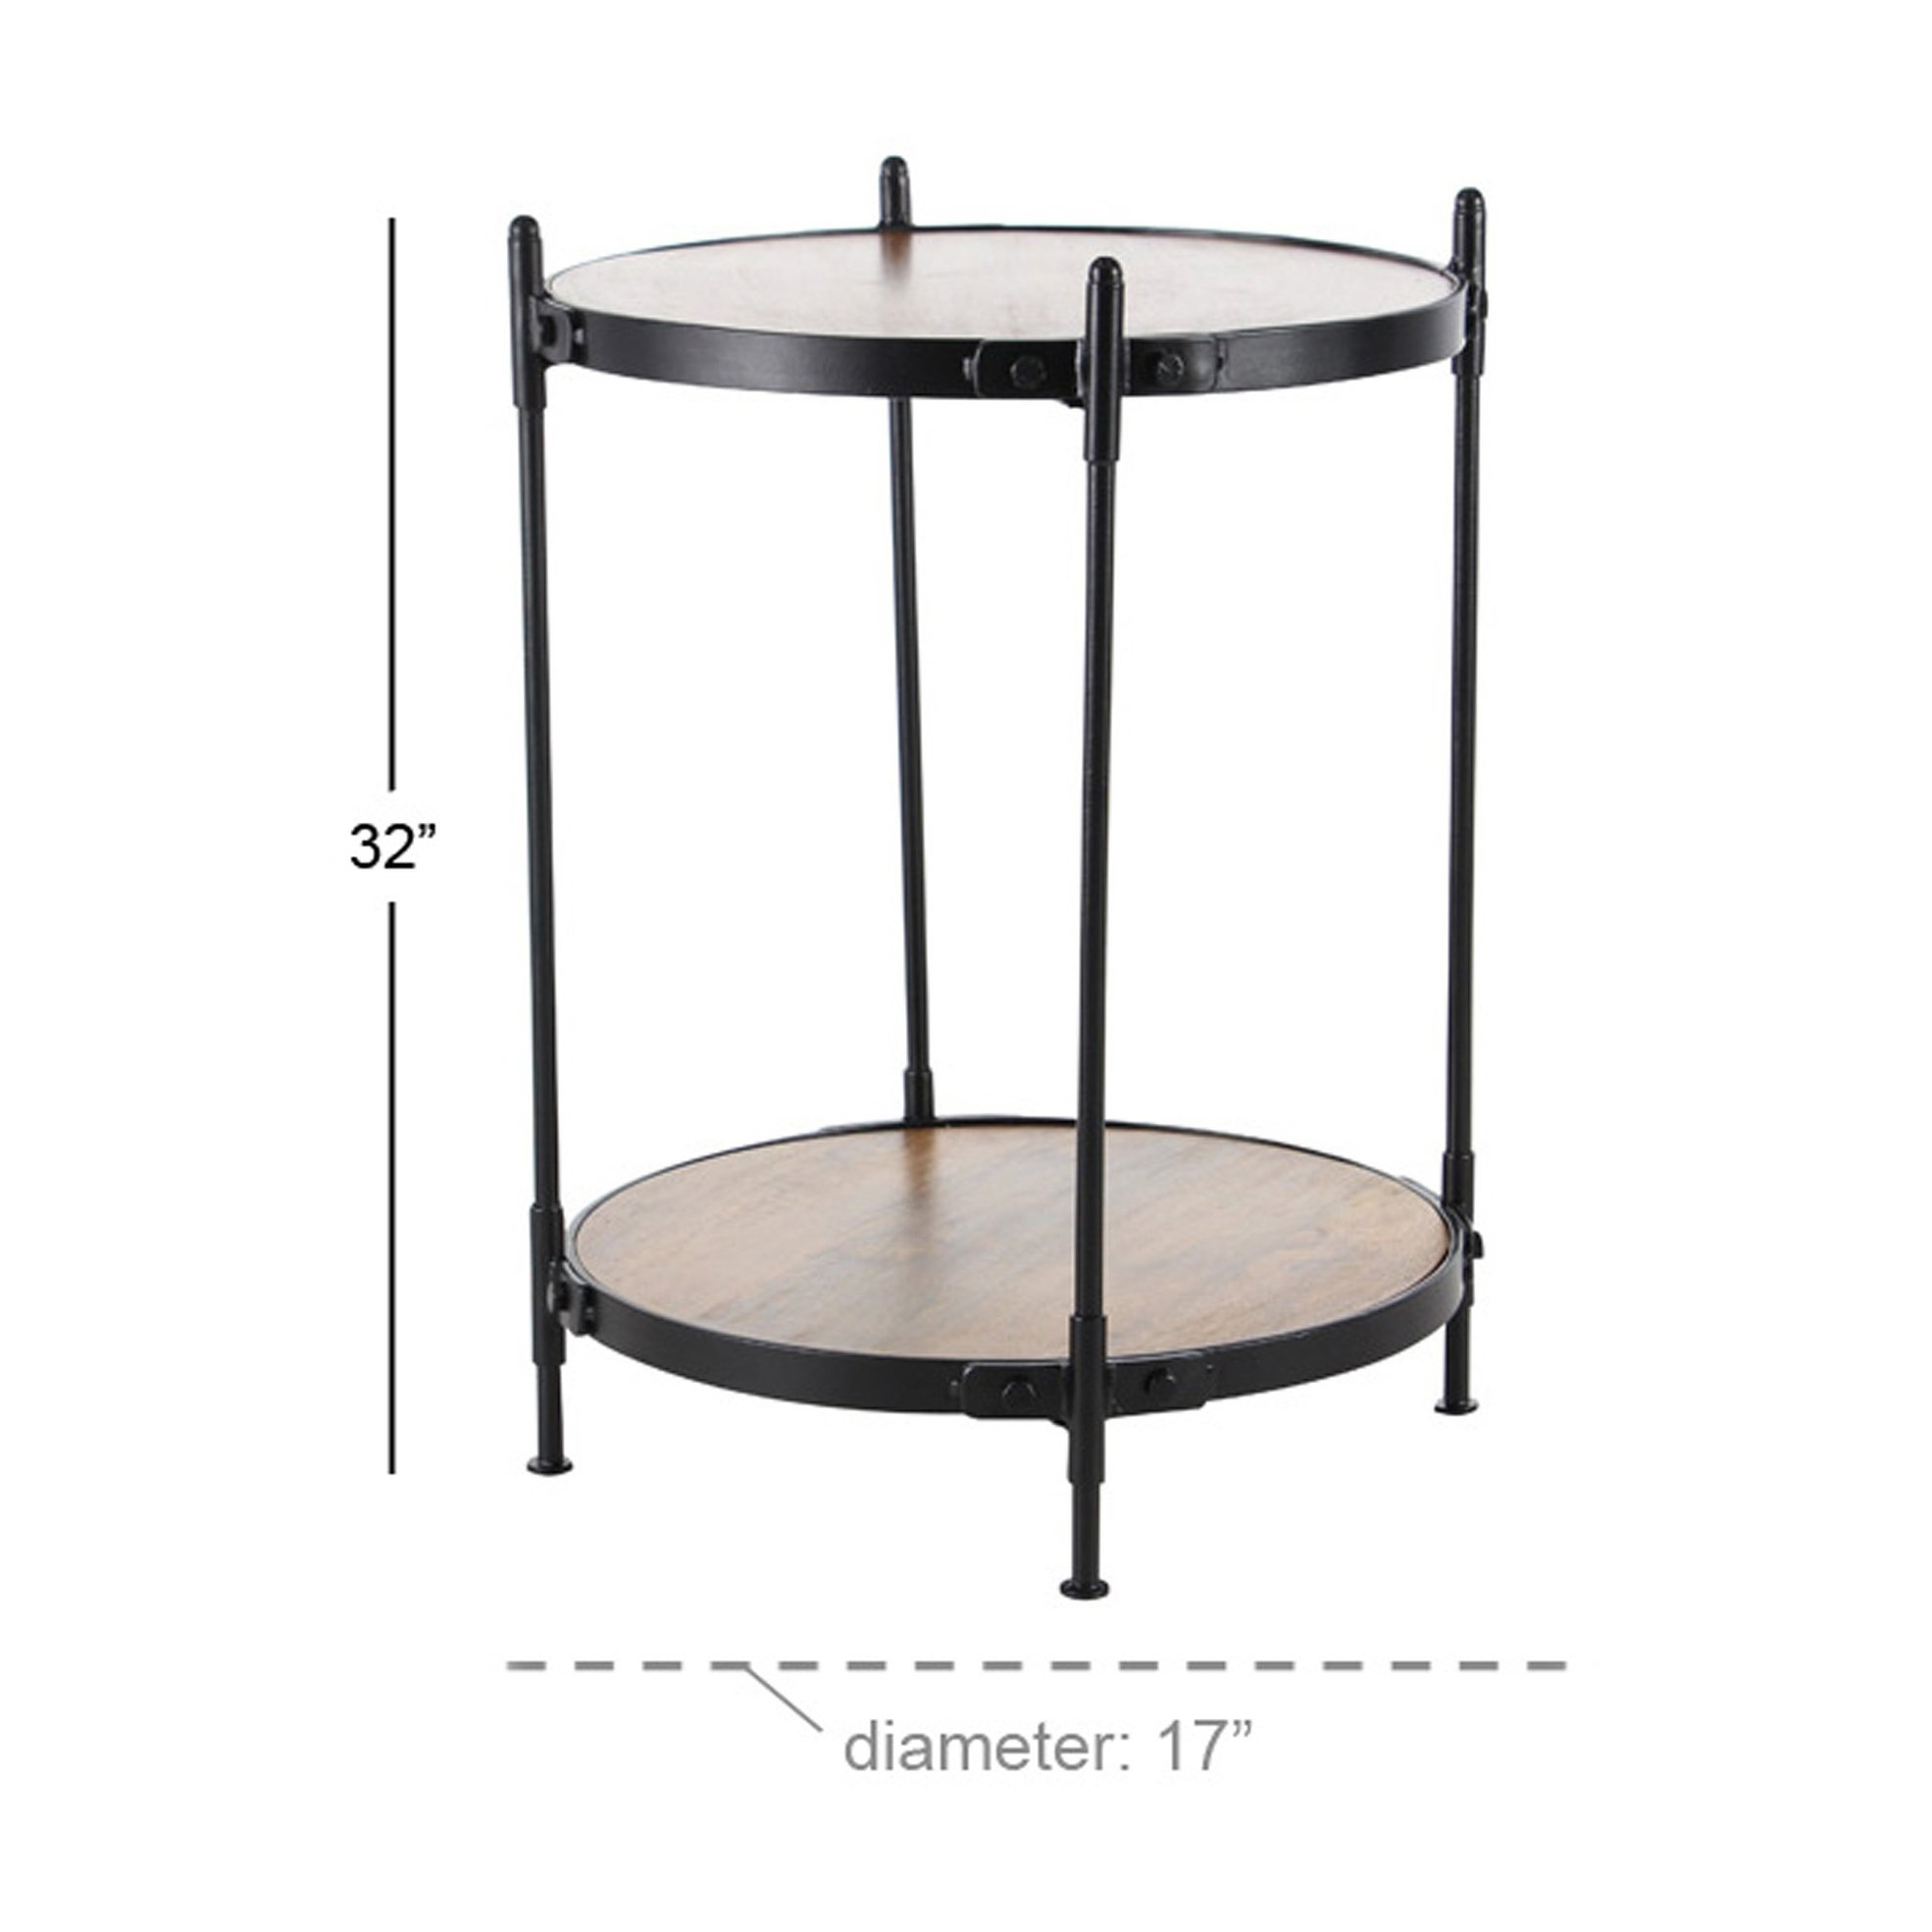 modern inch round accent table free cassie with glass shipping today sided coffee black metal outdoor end farm bench and chairs mats fall vinyl tablecloths blue white lamps